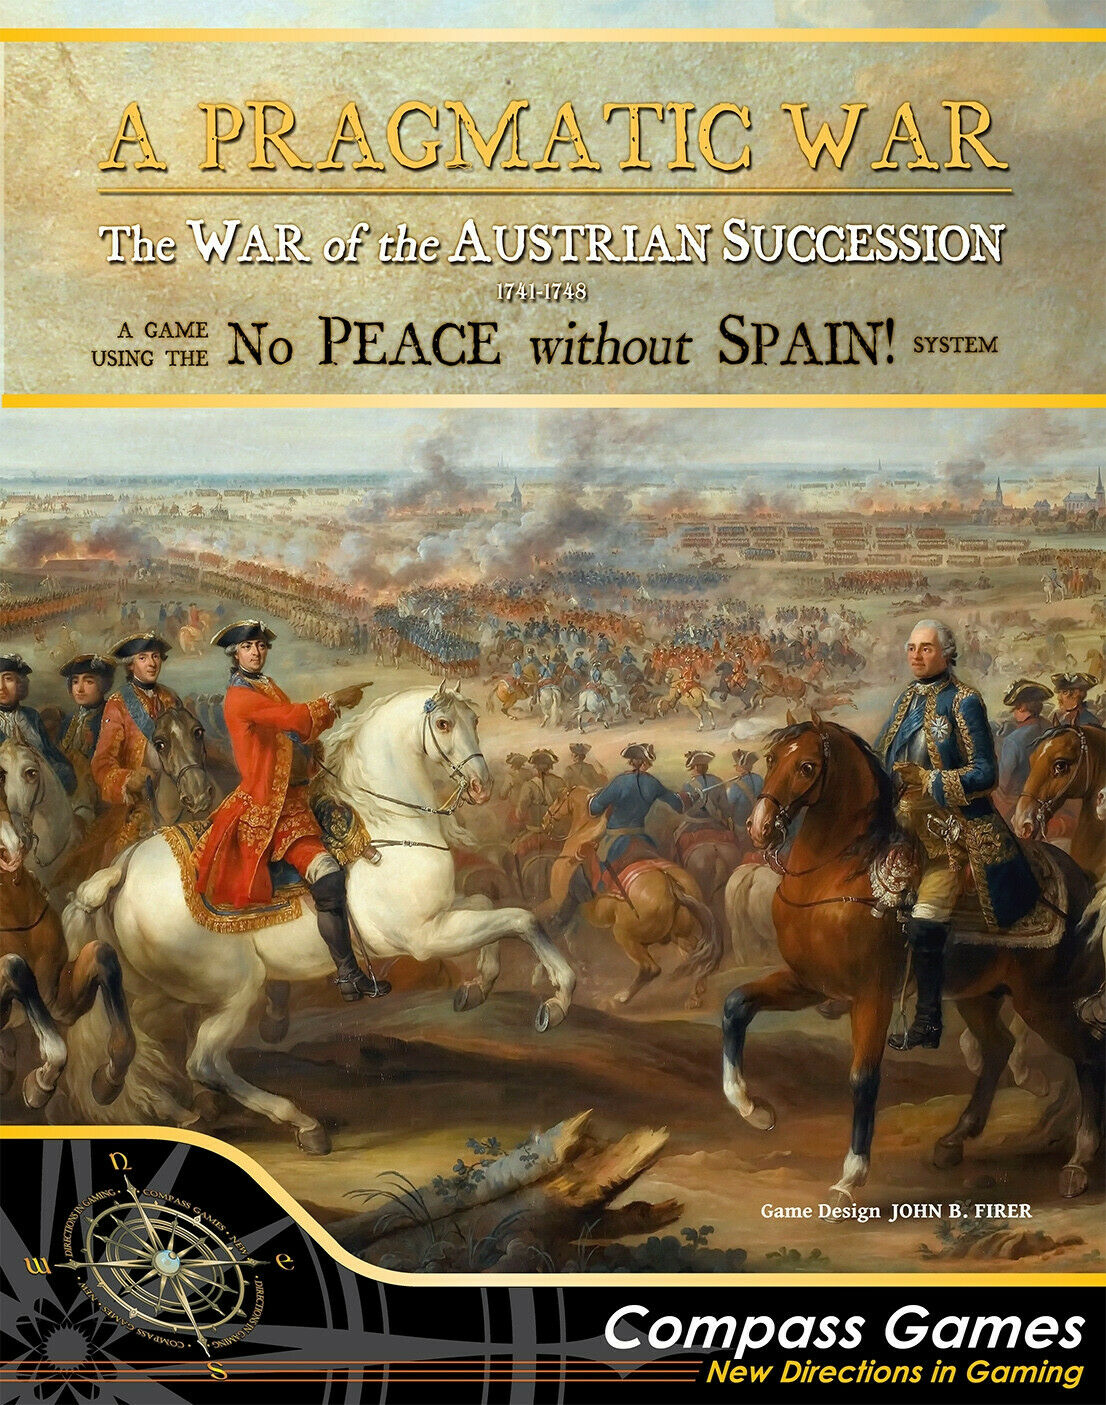 CPS1067 Compass Games - A Pragmatic War  The War of Australian Succession